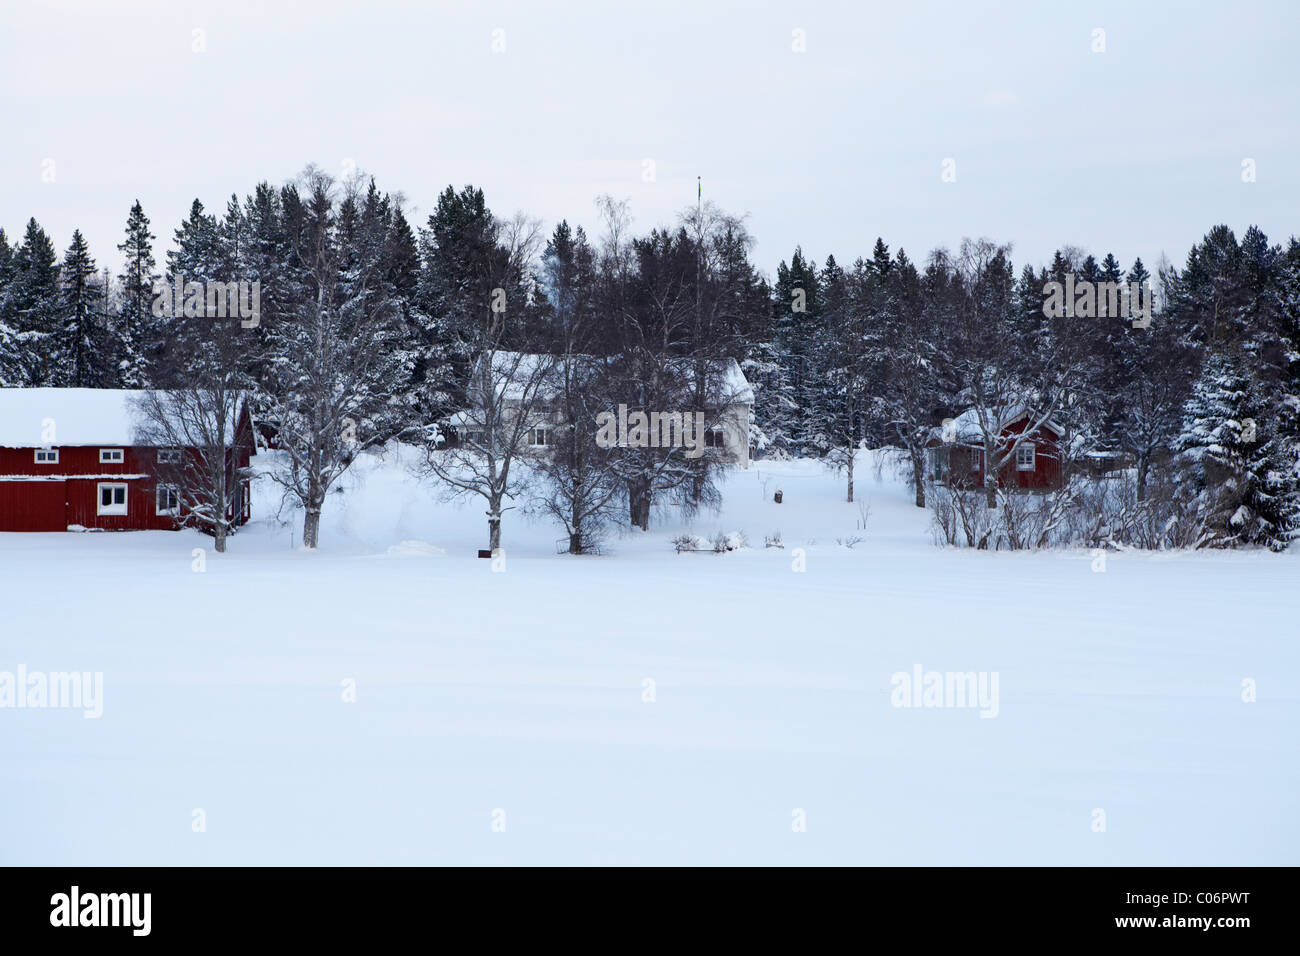 Snow covered landscape of houses in forest - Stock Image